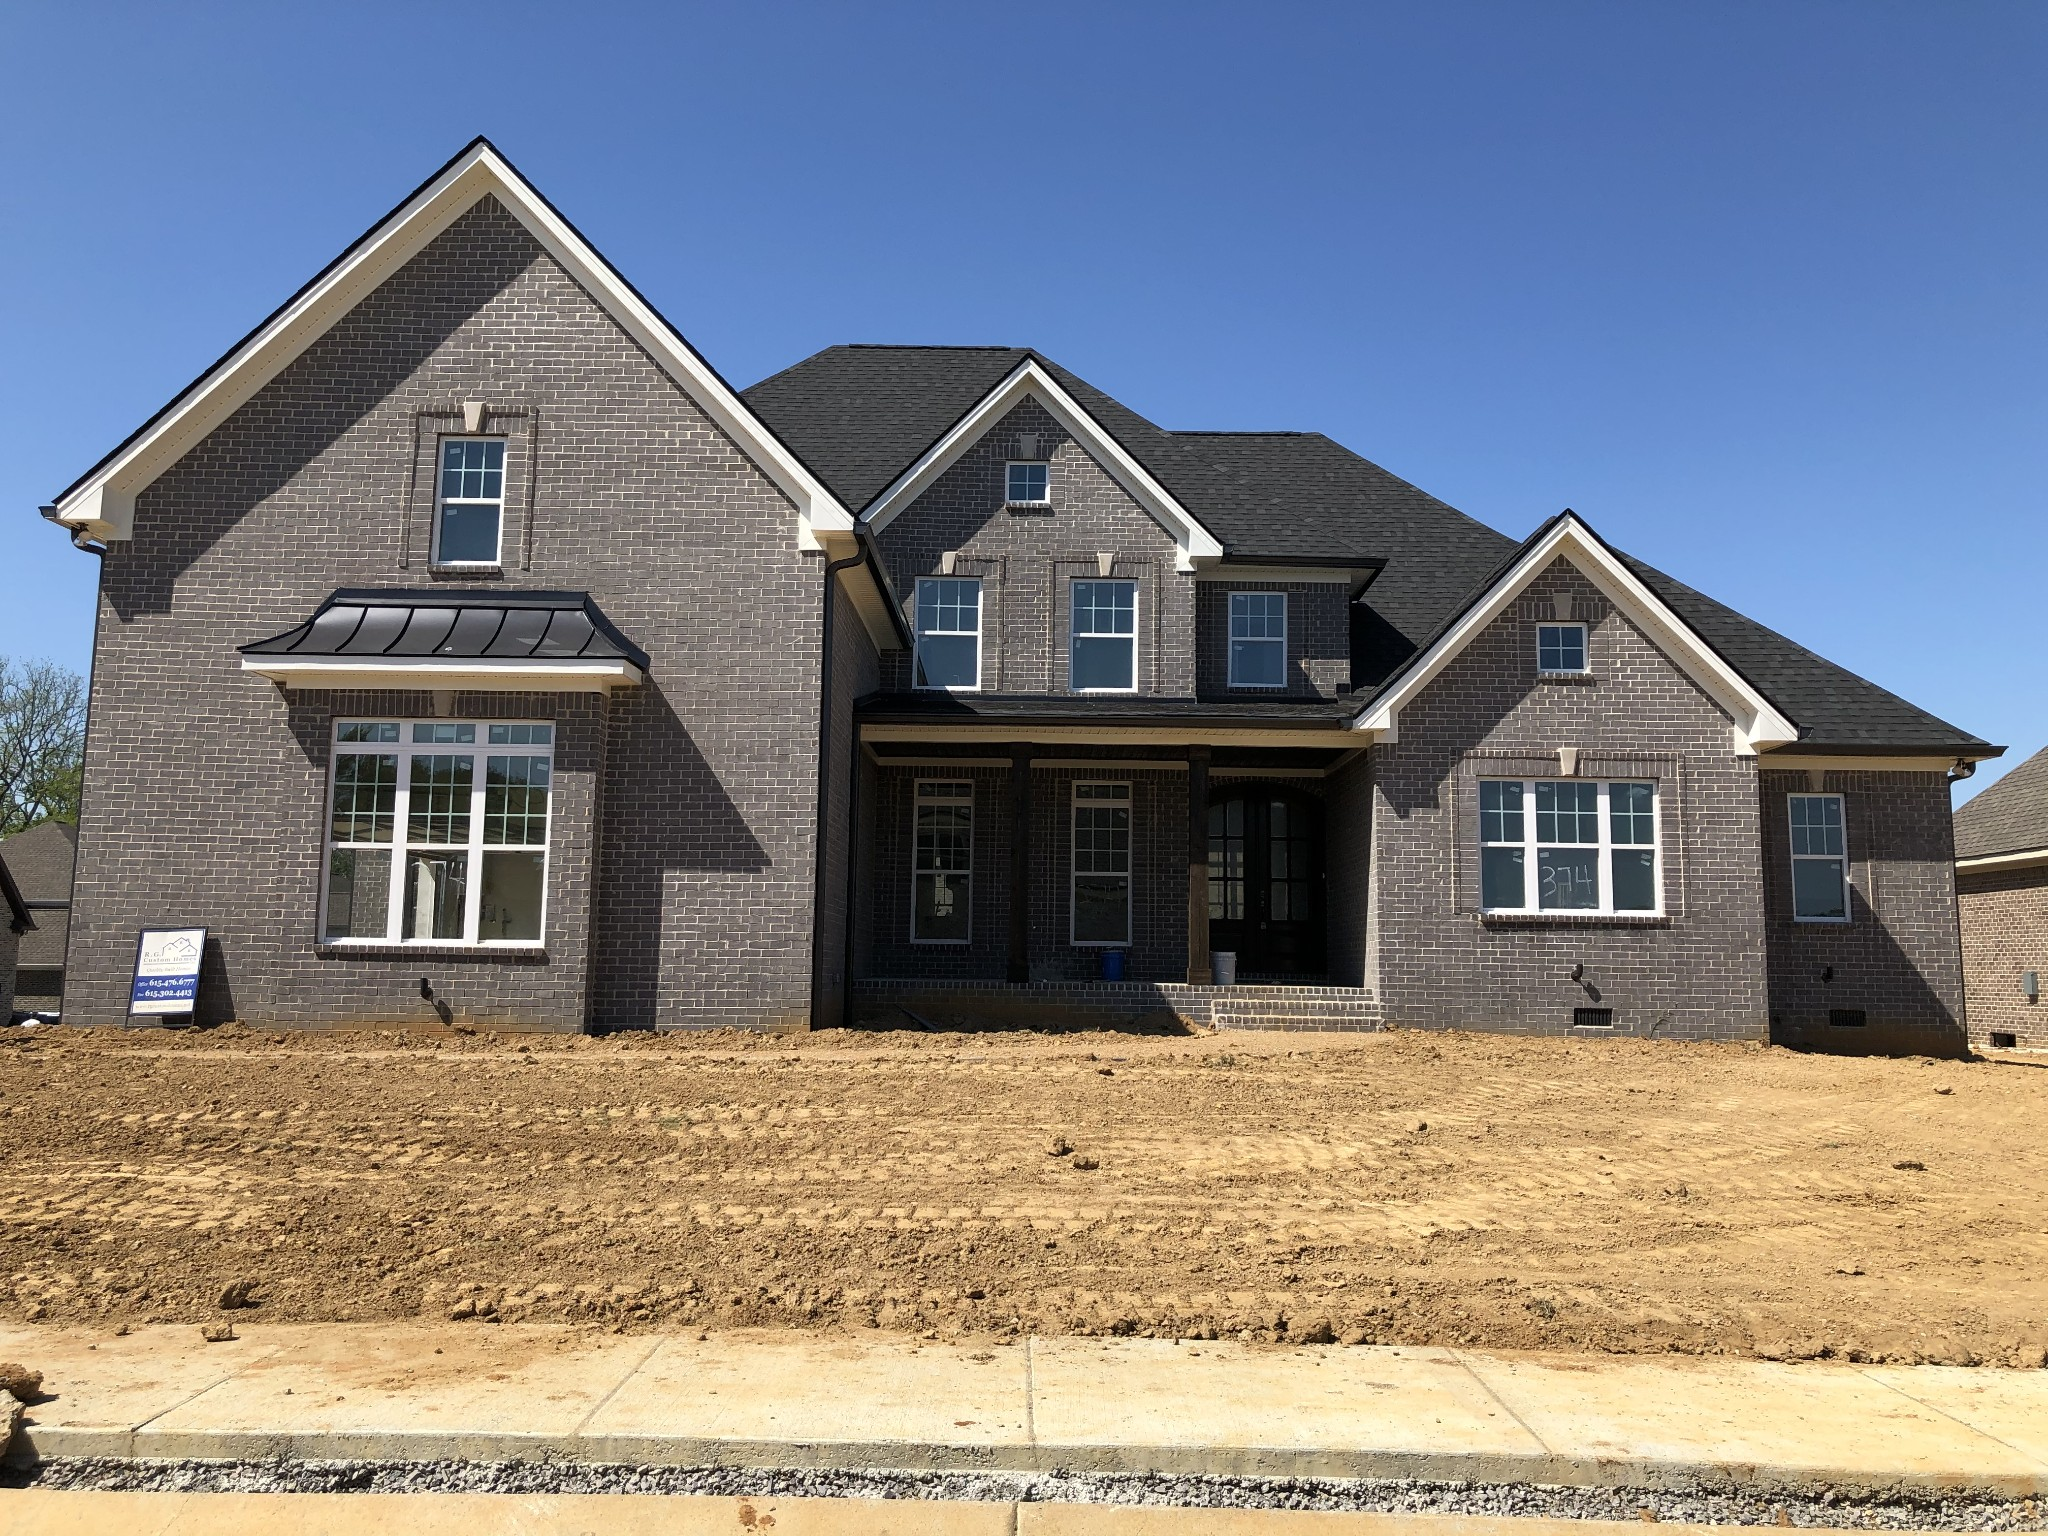 4016 Canberra Dr (374), Spring Hill, Tennessee